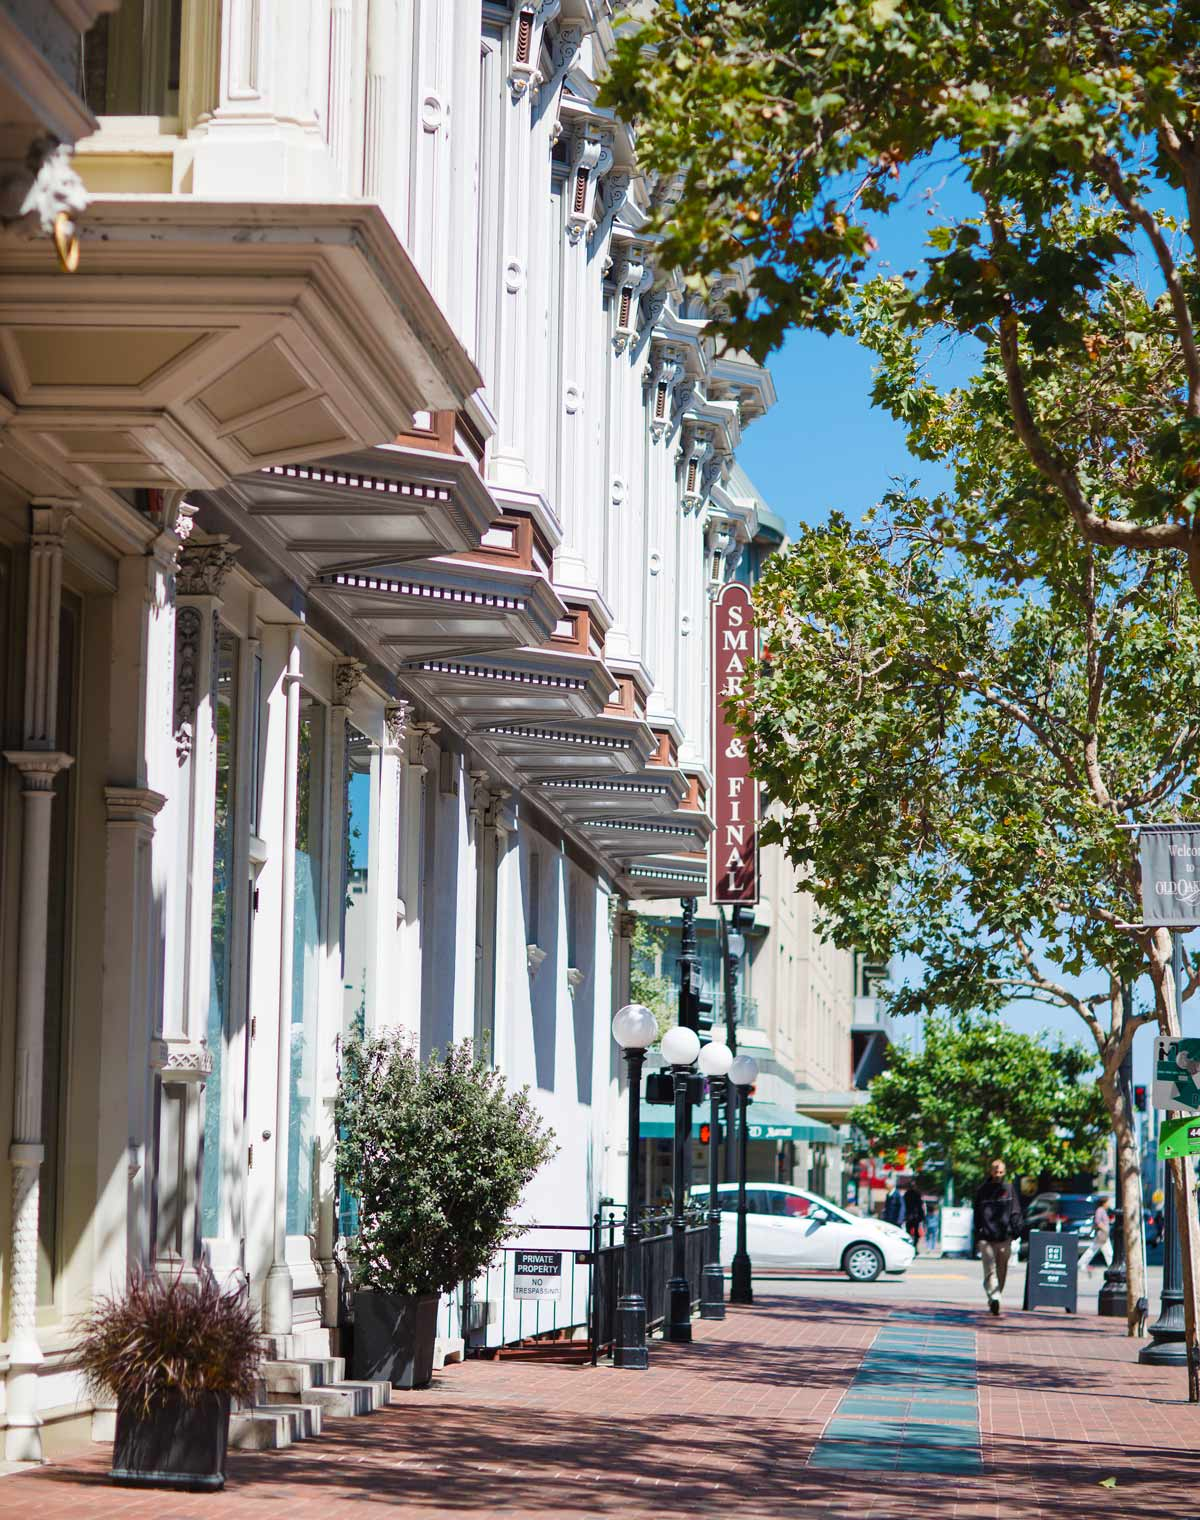 See What's available - Amongst a growing retail renaissance, a large block of space is available for the first time in 30 years. Offering over 70k SF of retail within the largest block of exquisitely preserved Victorian buildings on the West Coast — get in while you still can!CONTACT US »